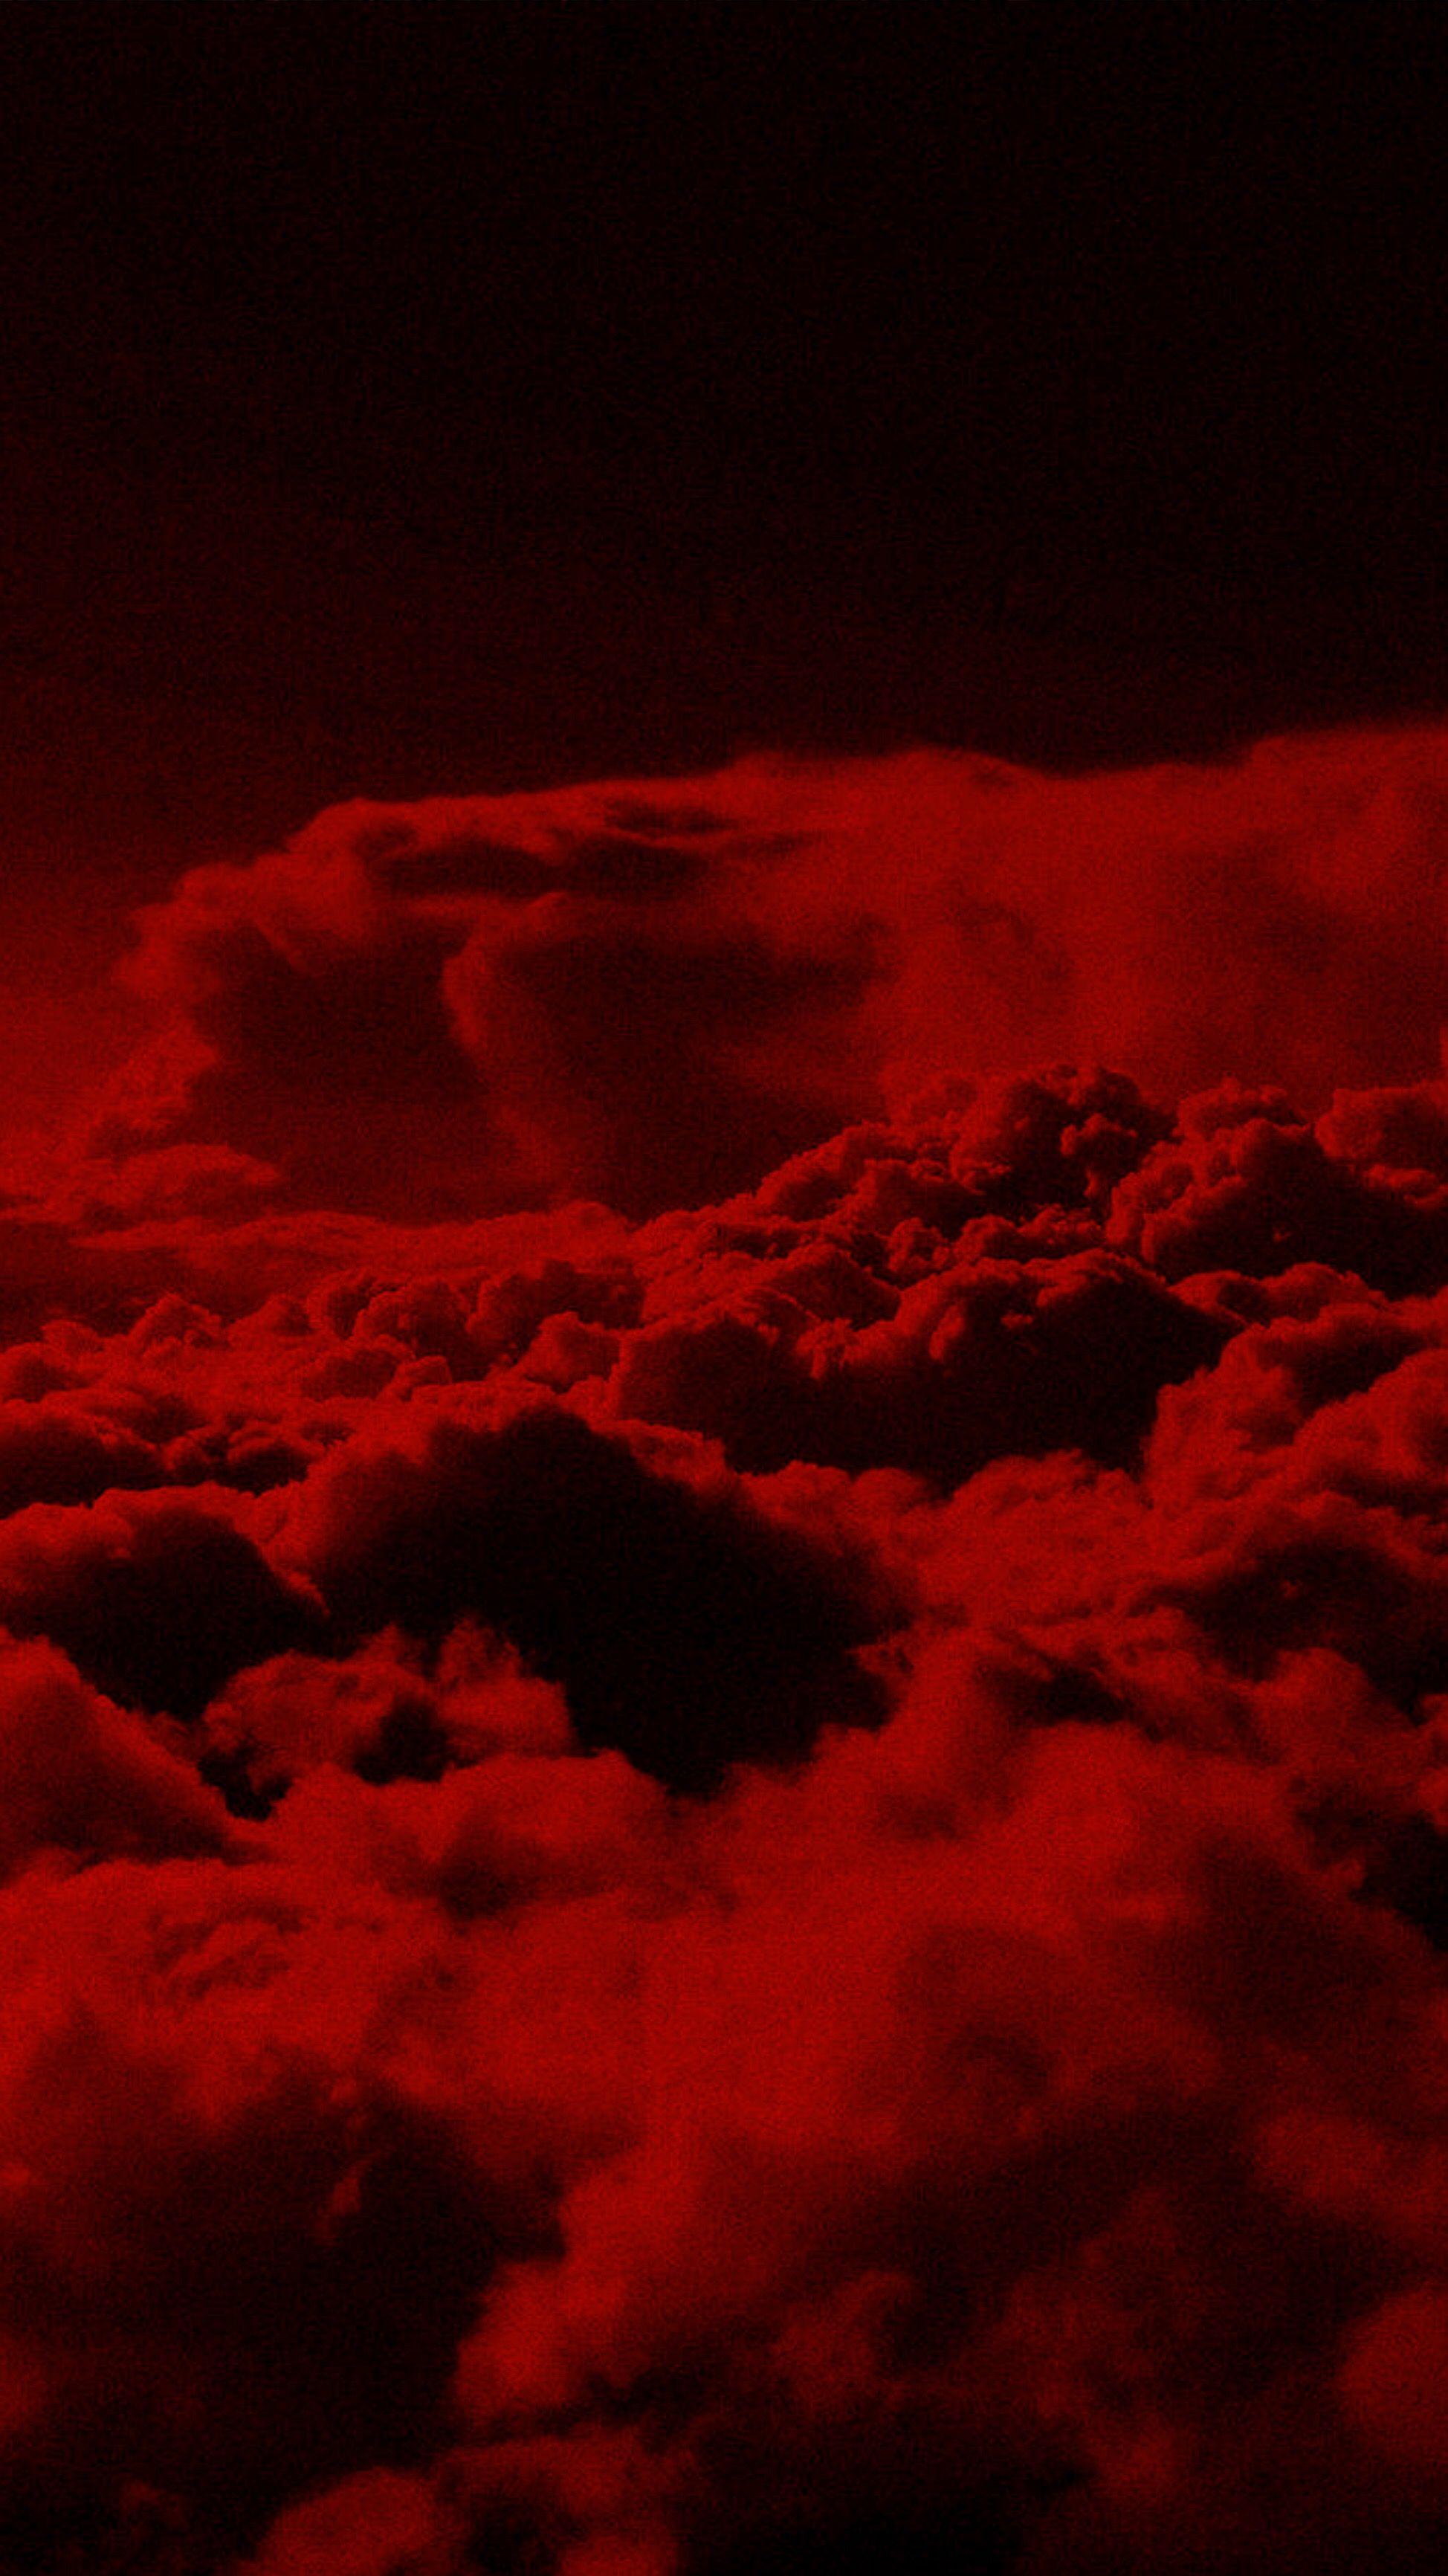 Red sky Dark red background, Dark red wallpaper, Red